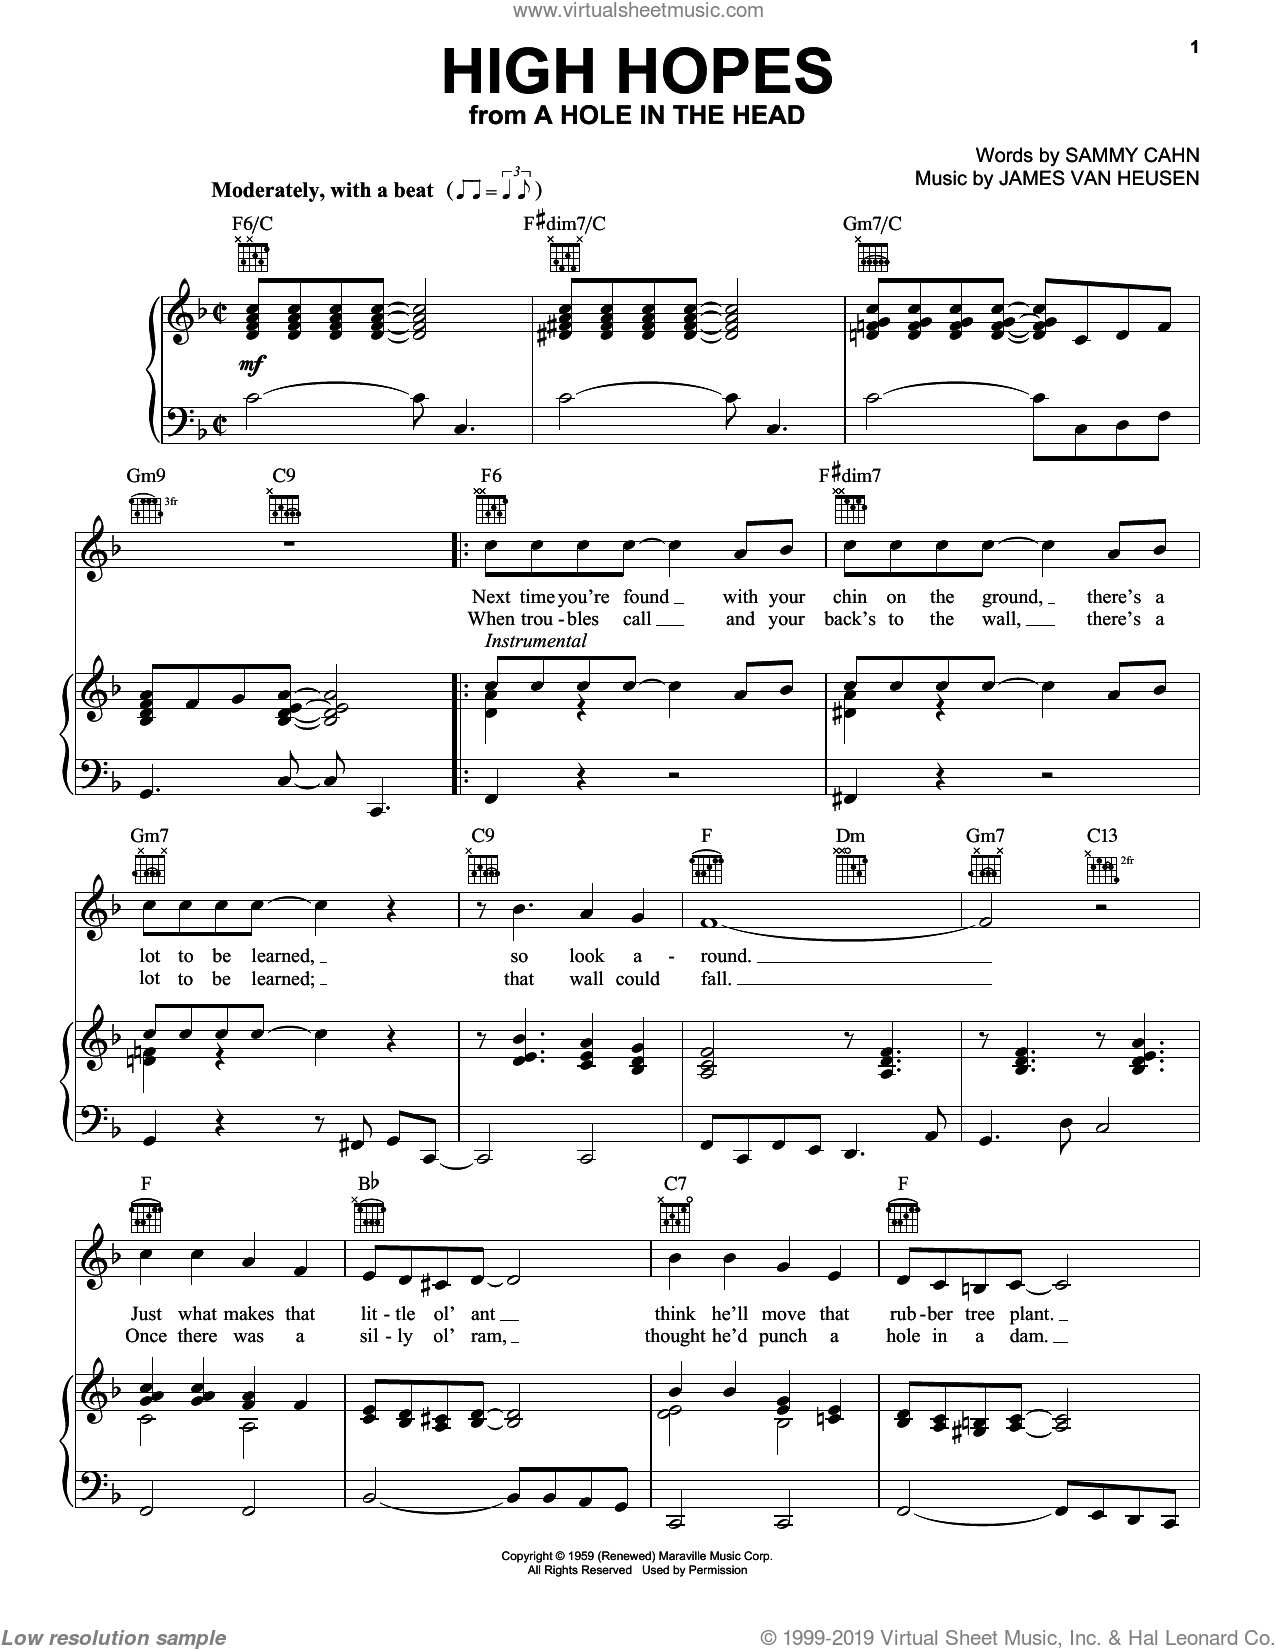 High Hopes sheet music for voice, piano or guitar by Frank Sinatra, Jimmy van Heusen and Sammy Cahn, intermediate skill level